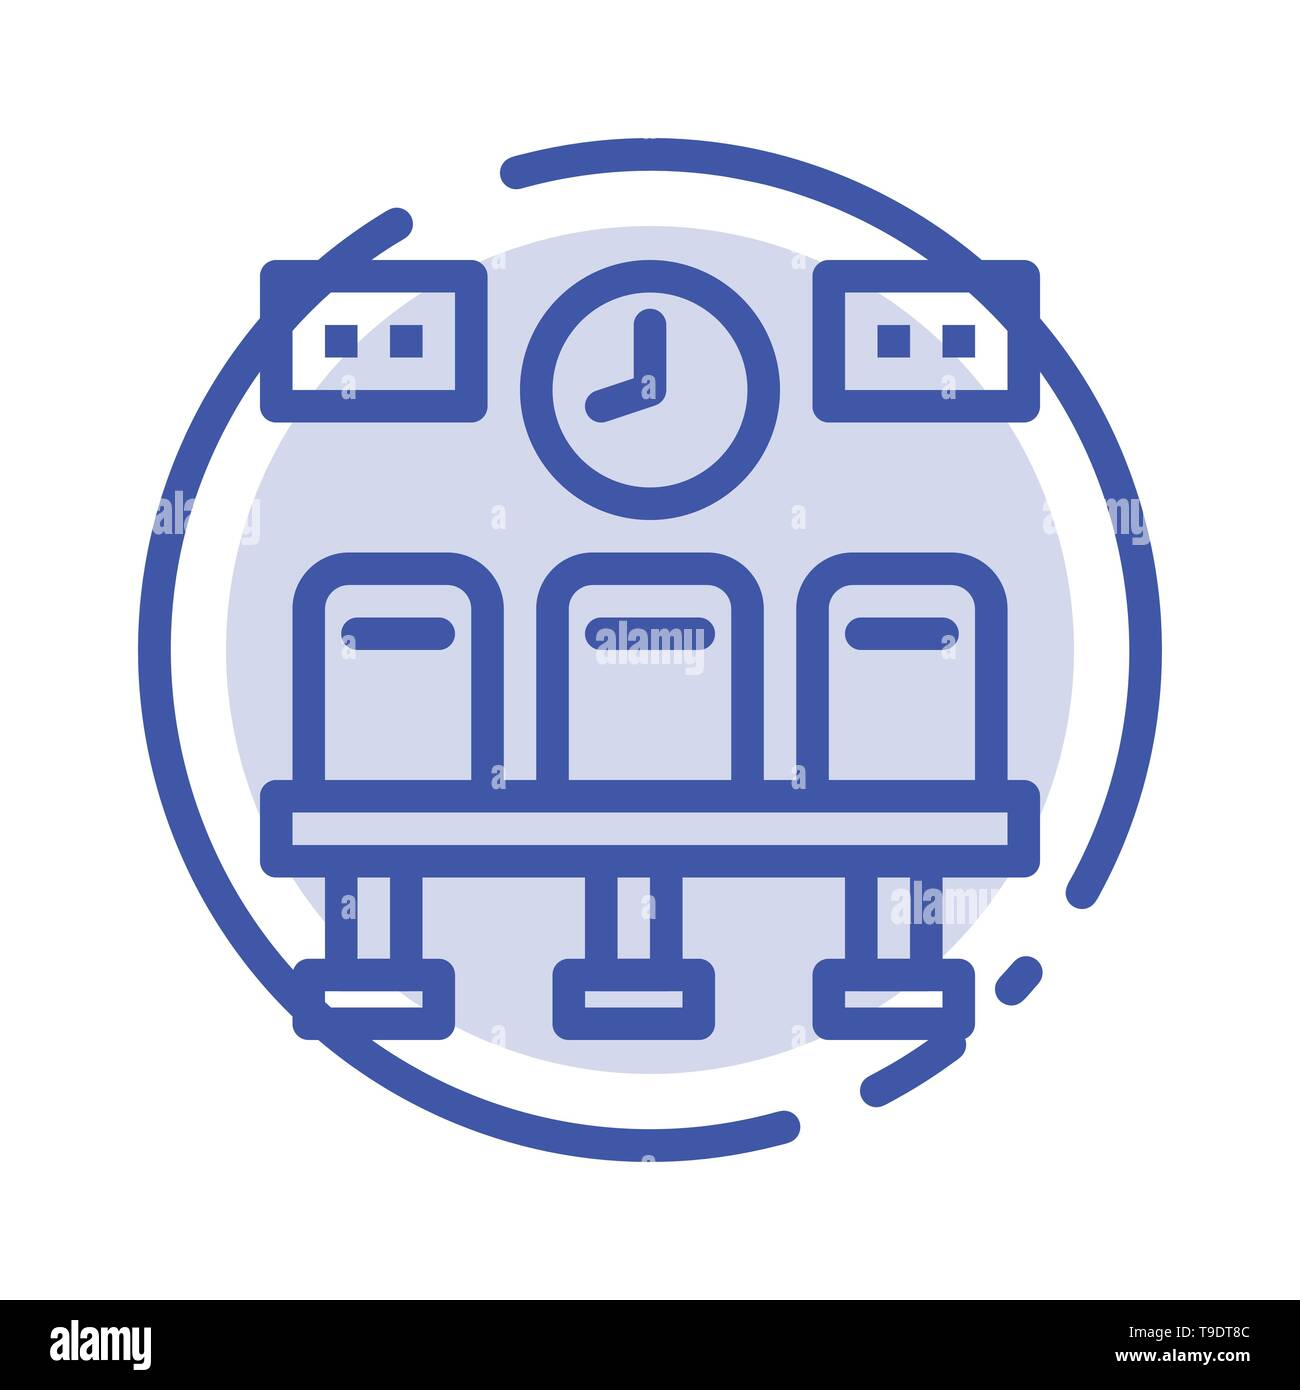 Seats, Train, Transportation, Clock Blue Dotted Line Line Icon - Stock Image